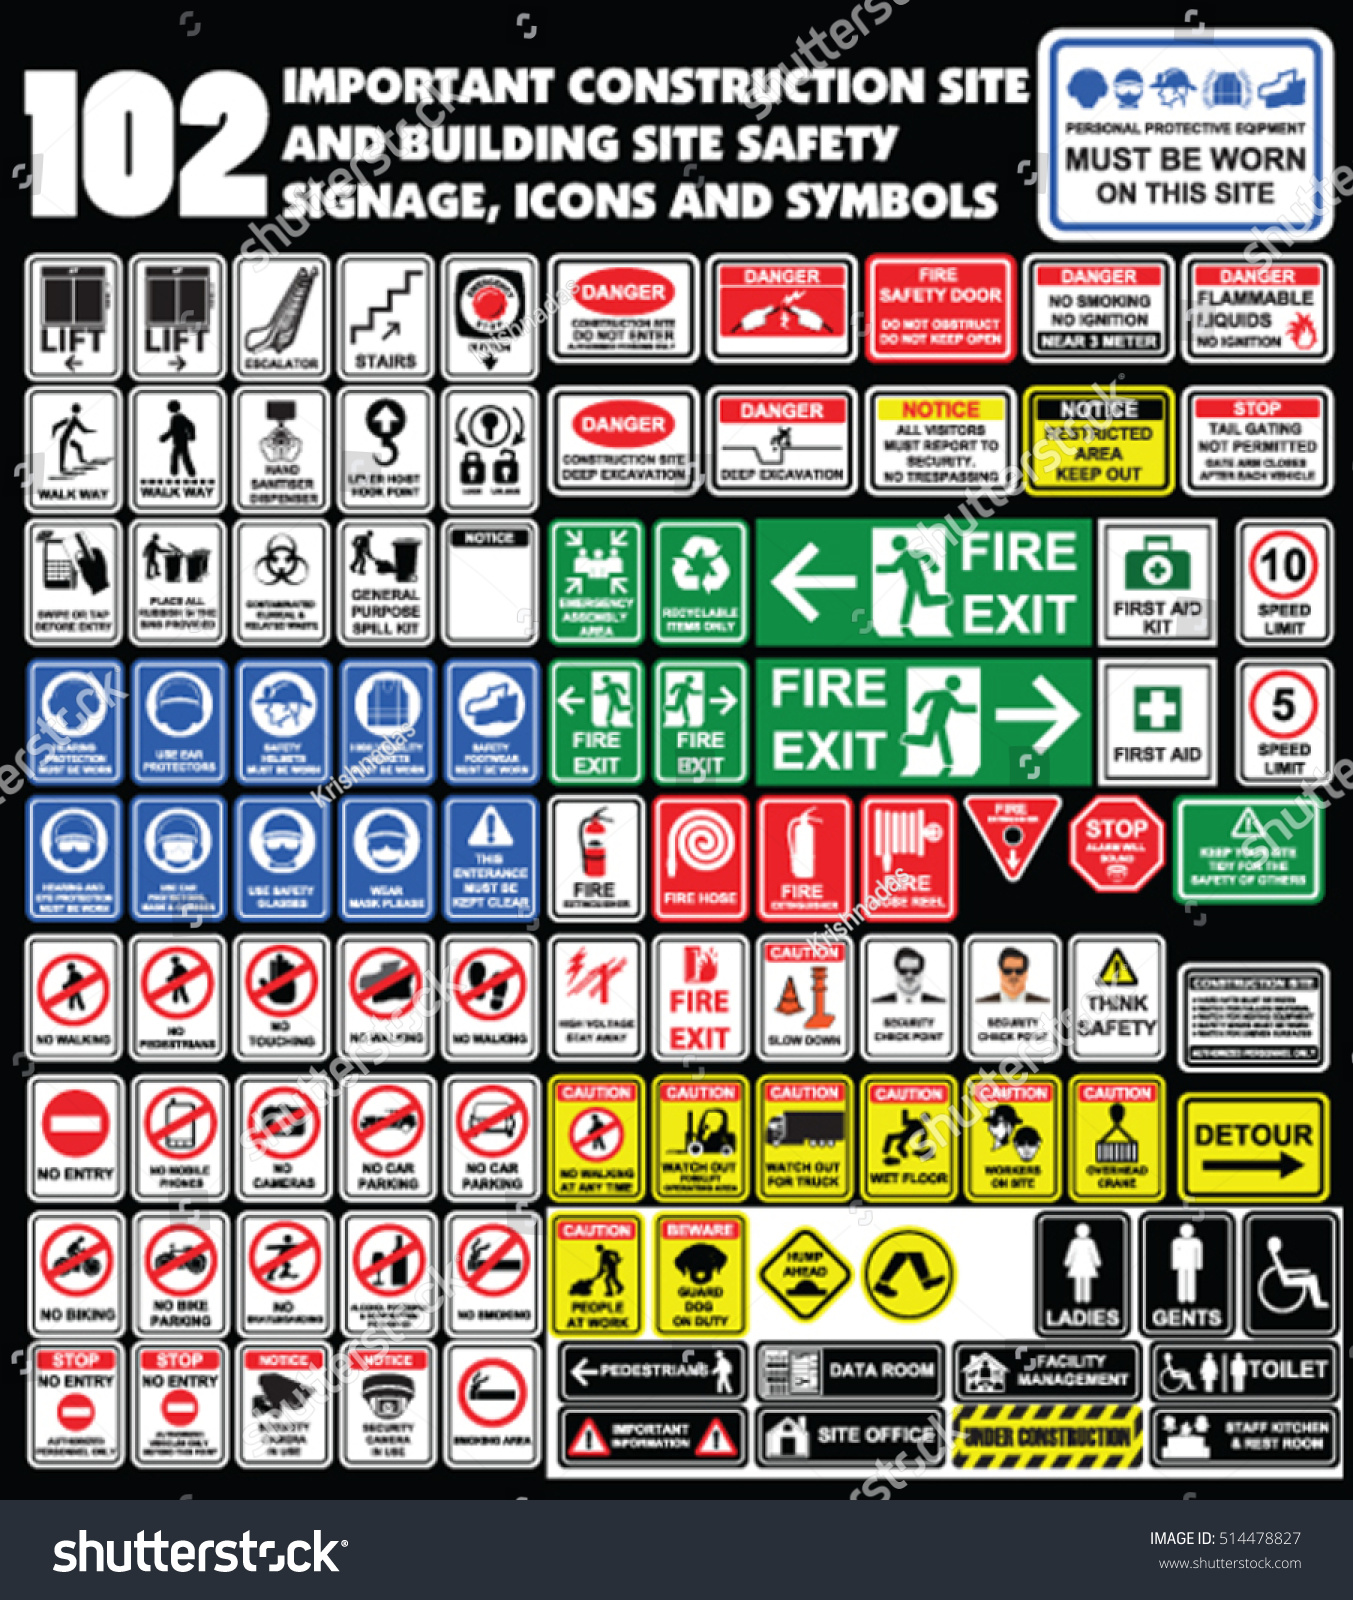 102 important construction site building site stock vector 102 important construction site and building site safety warning signage icons and symbols building buycottarizona Image collections